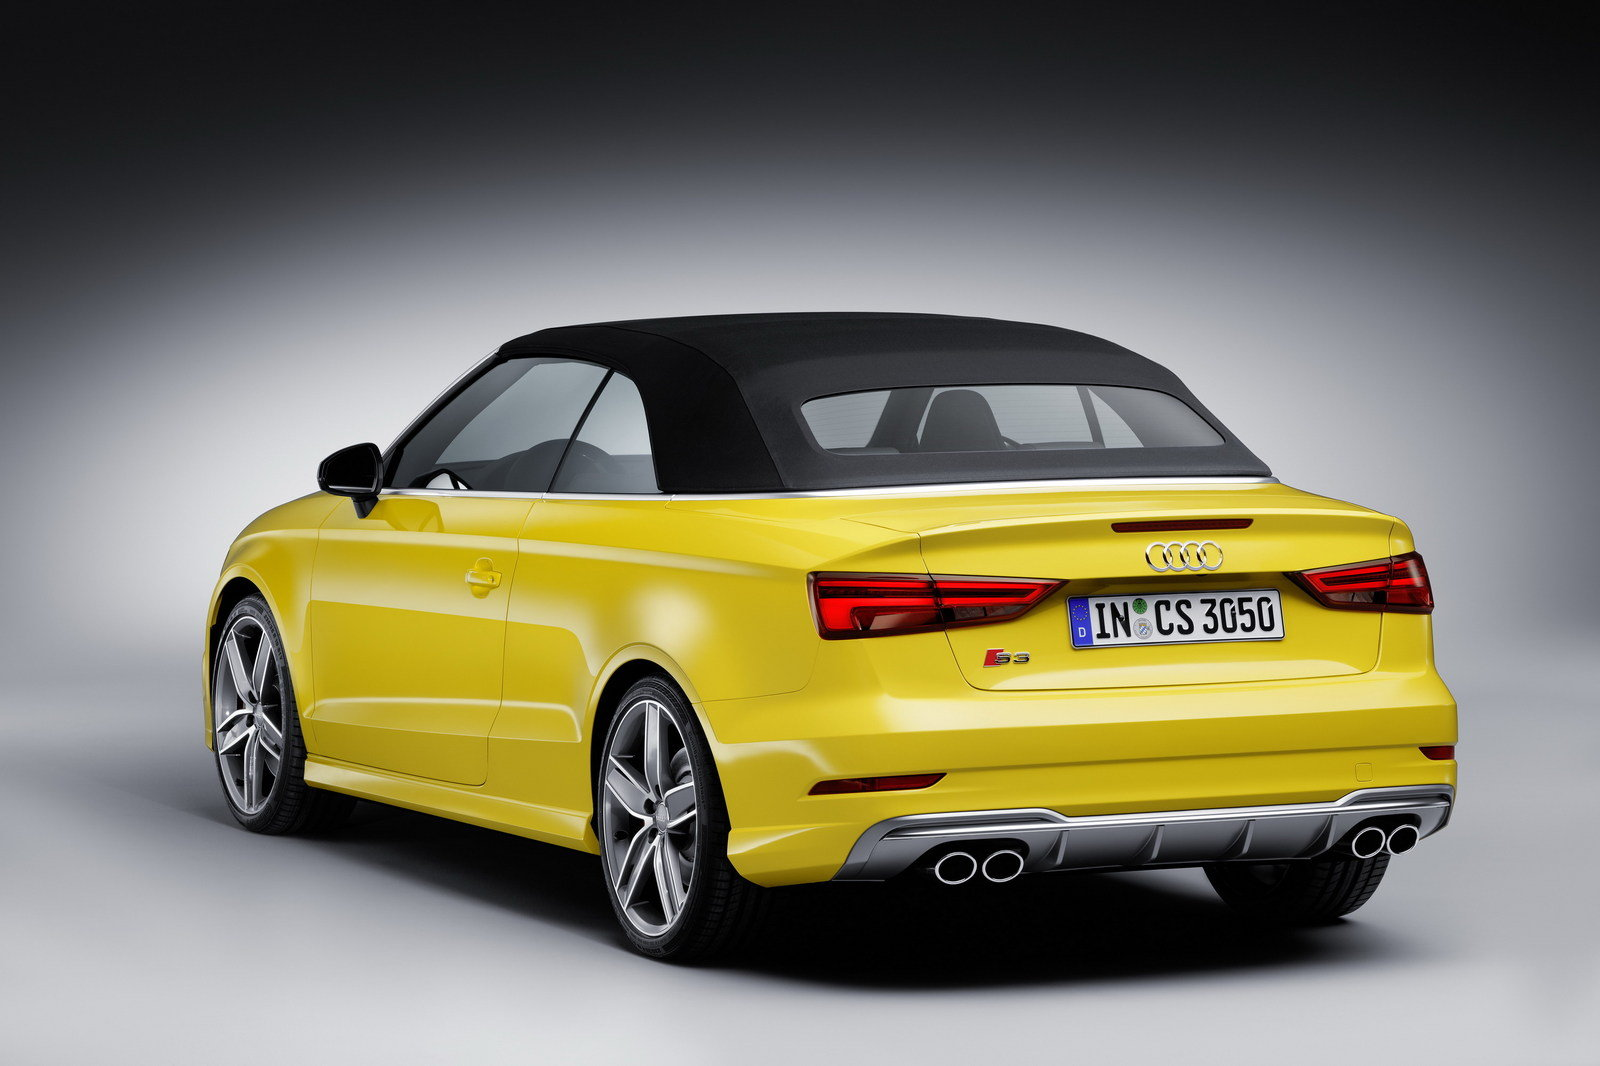 2017 audi s3 cabriolet picture 671879 car review top speed. Black Bedroom Furniture Sets. Home Design Ideas